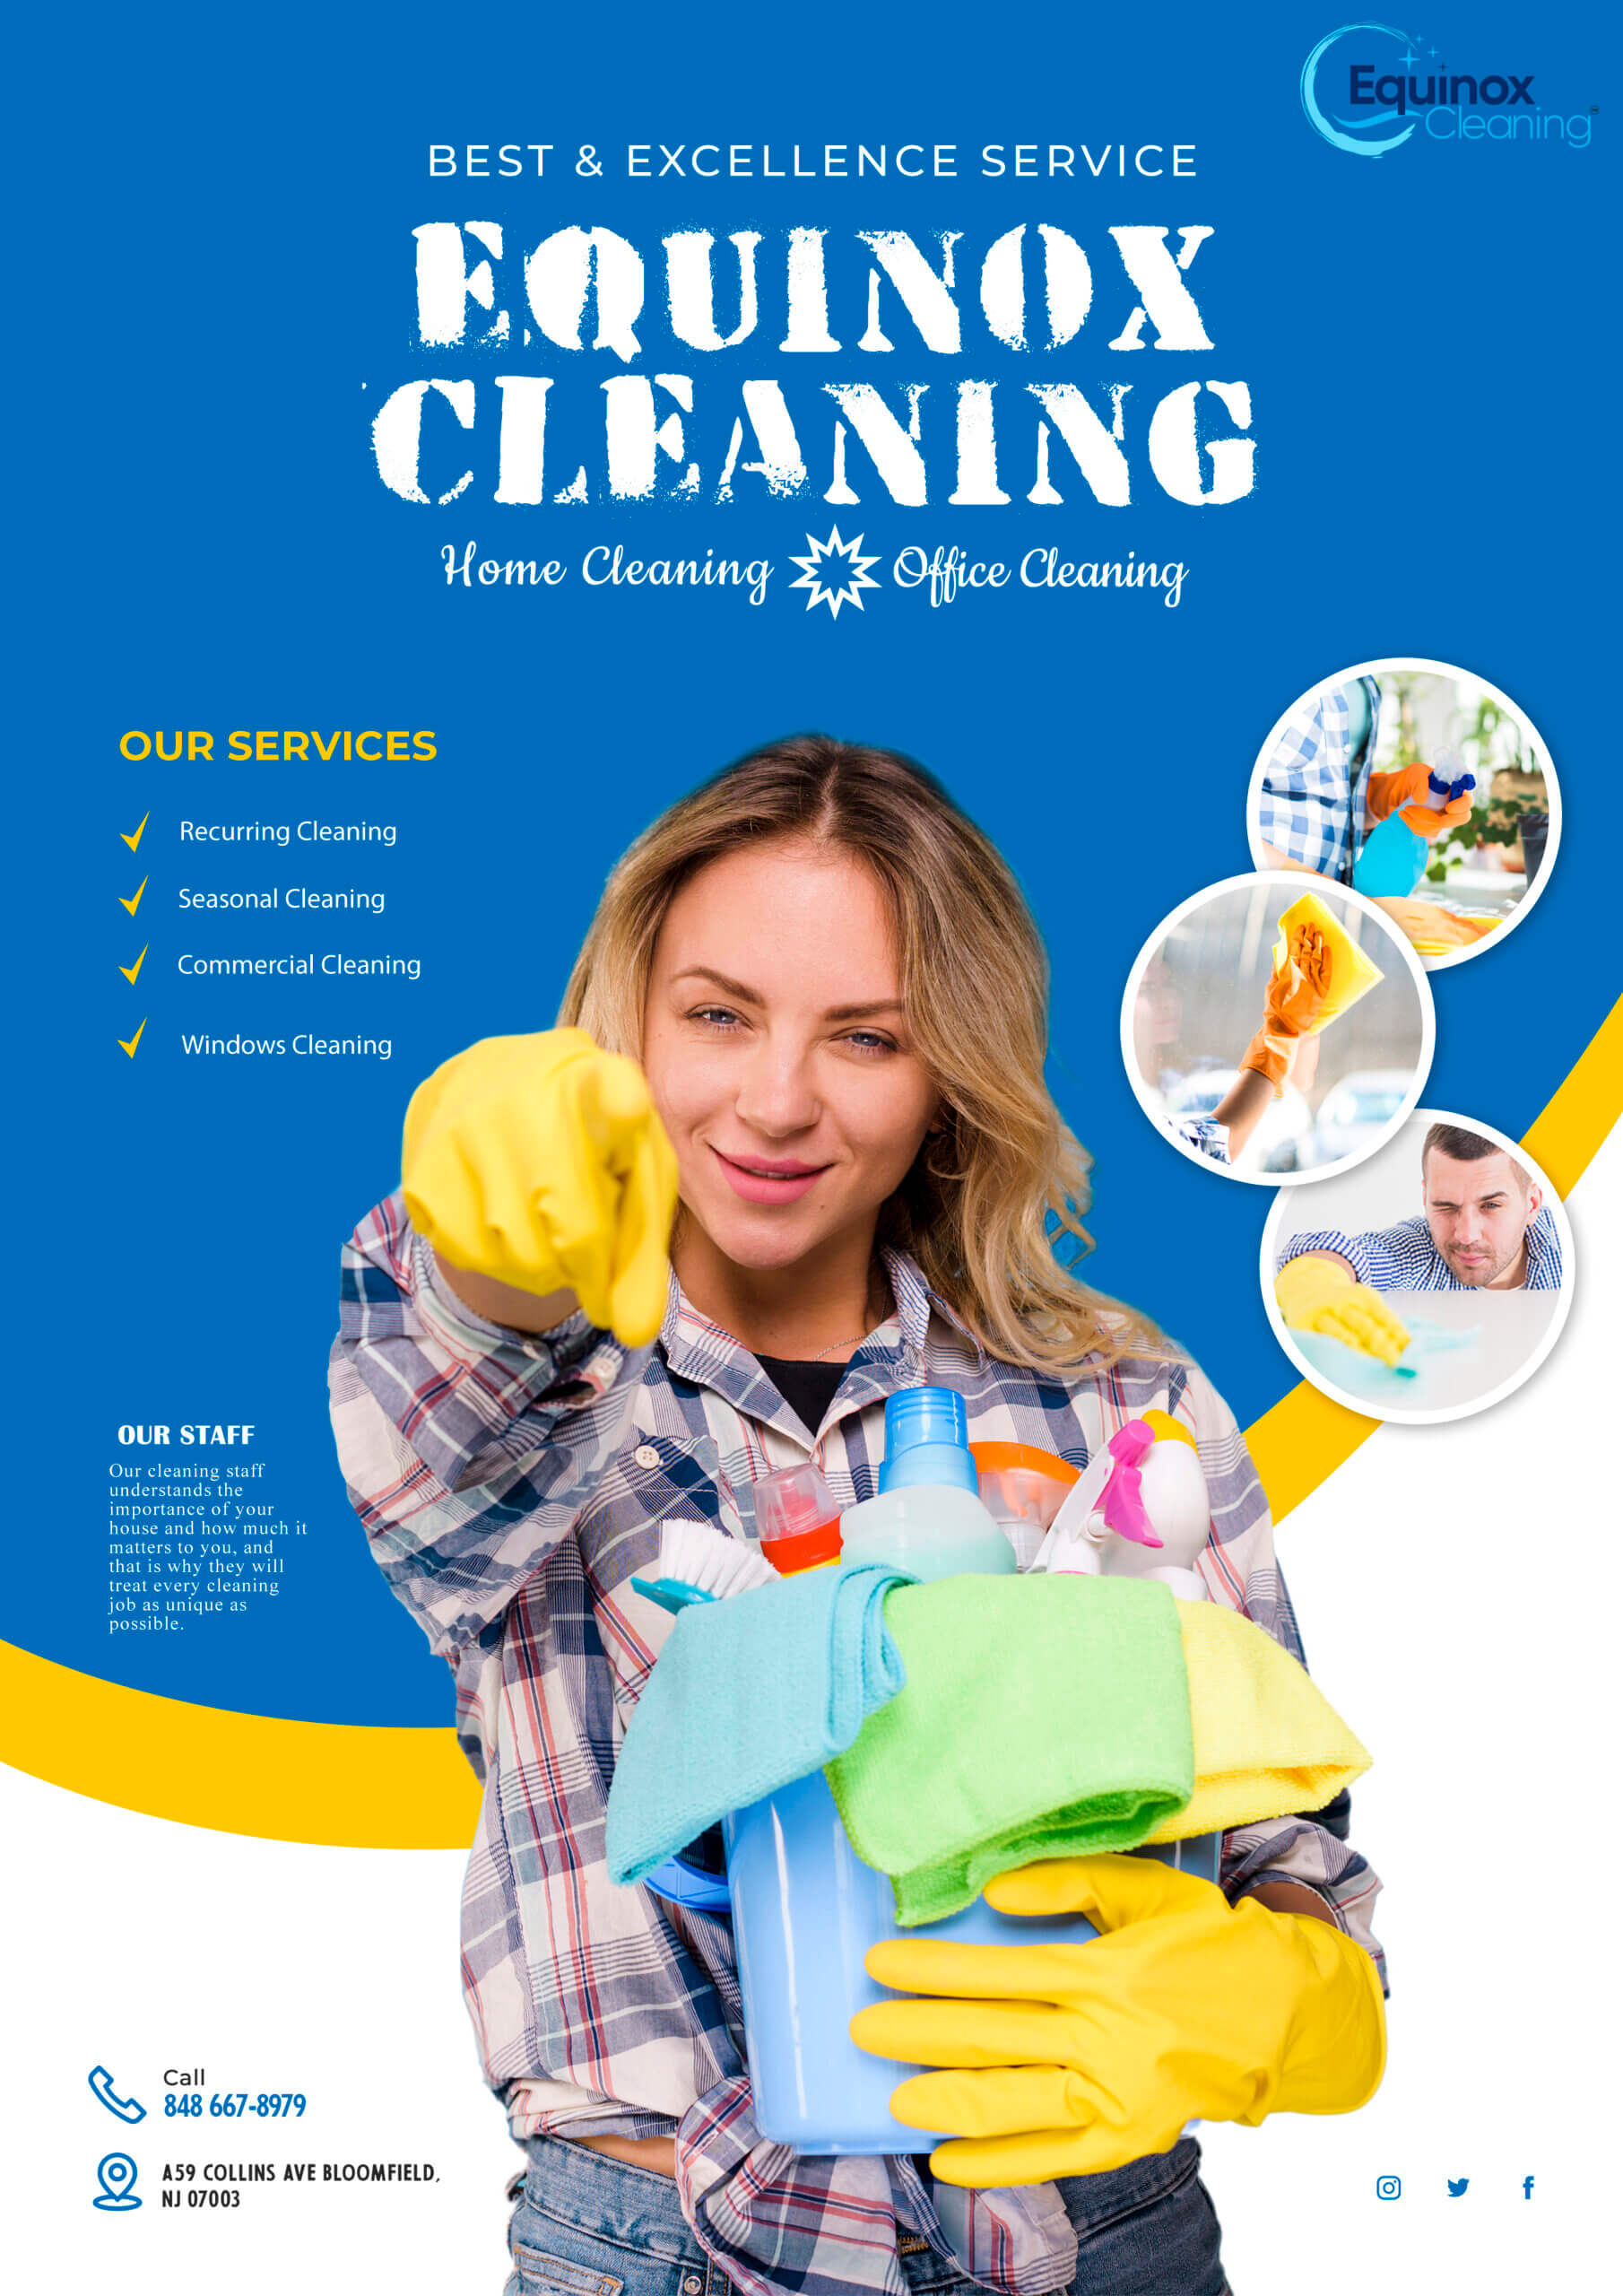 Best & Excellence Cleaning Services - Equinox cleaning